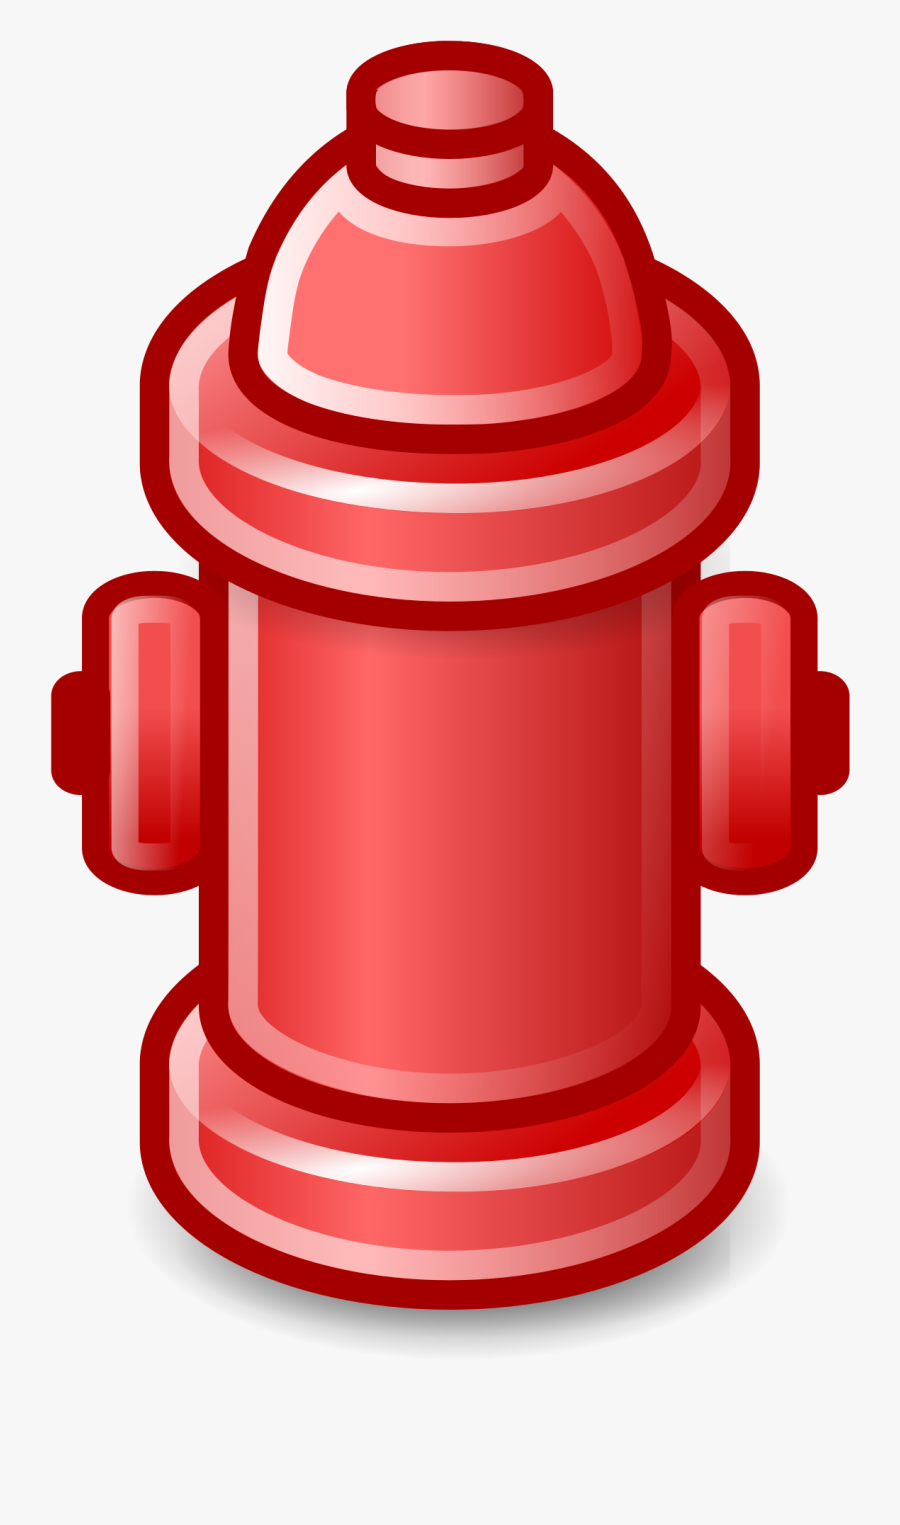 Hydrant Icon - Transparent Fire Hydrant Png, Transparent Clipart